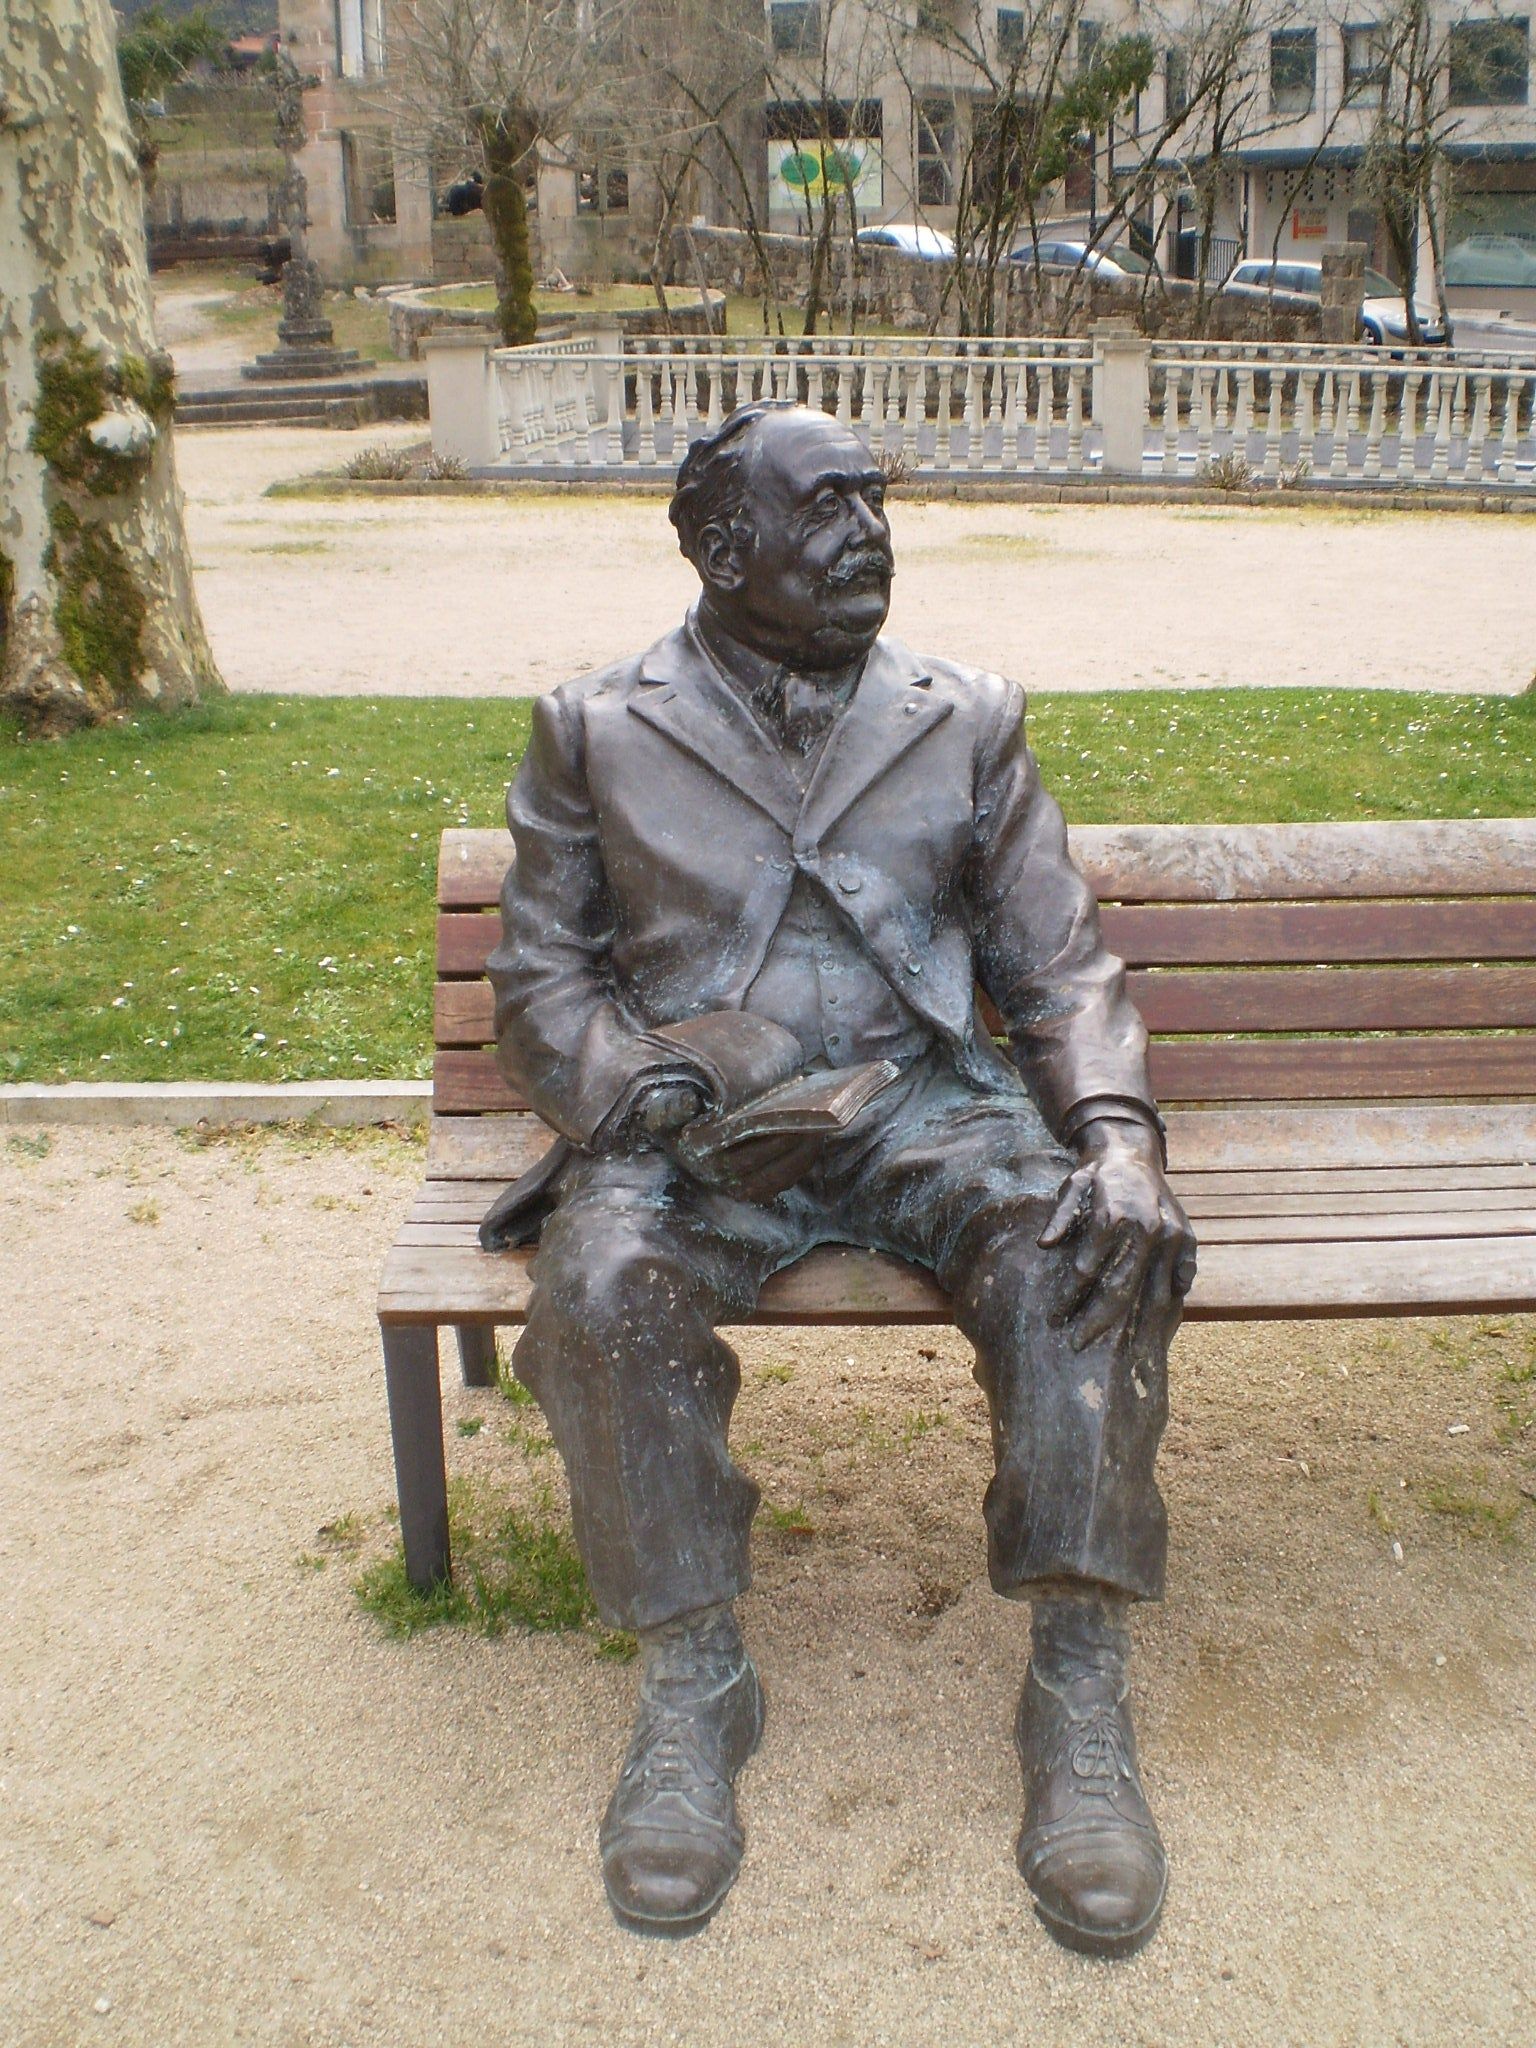 Sculpture of Enrique Peinador Lines